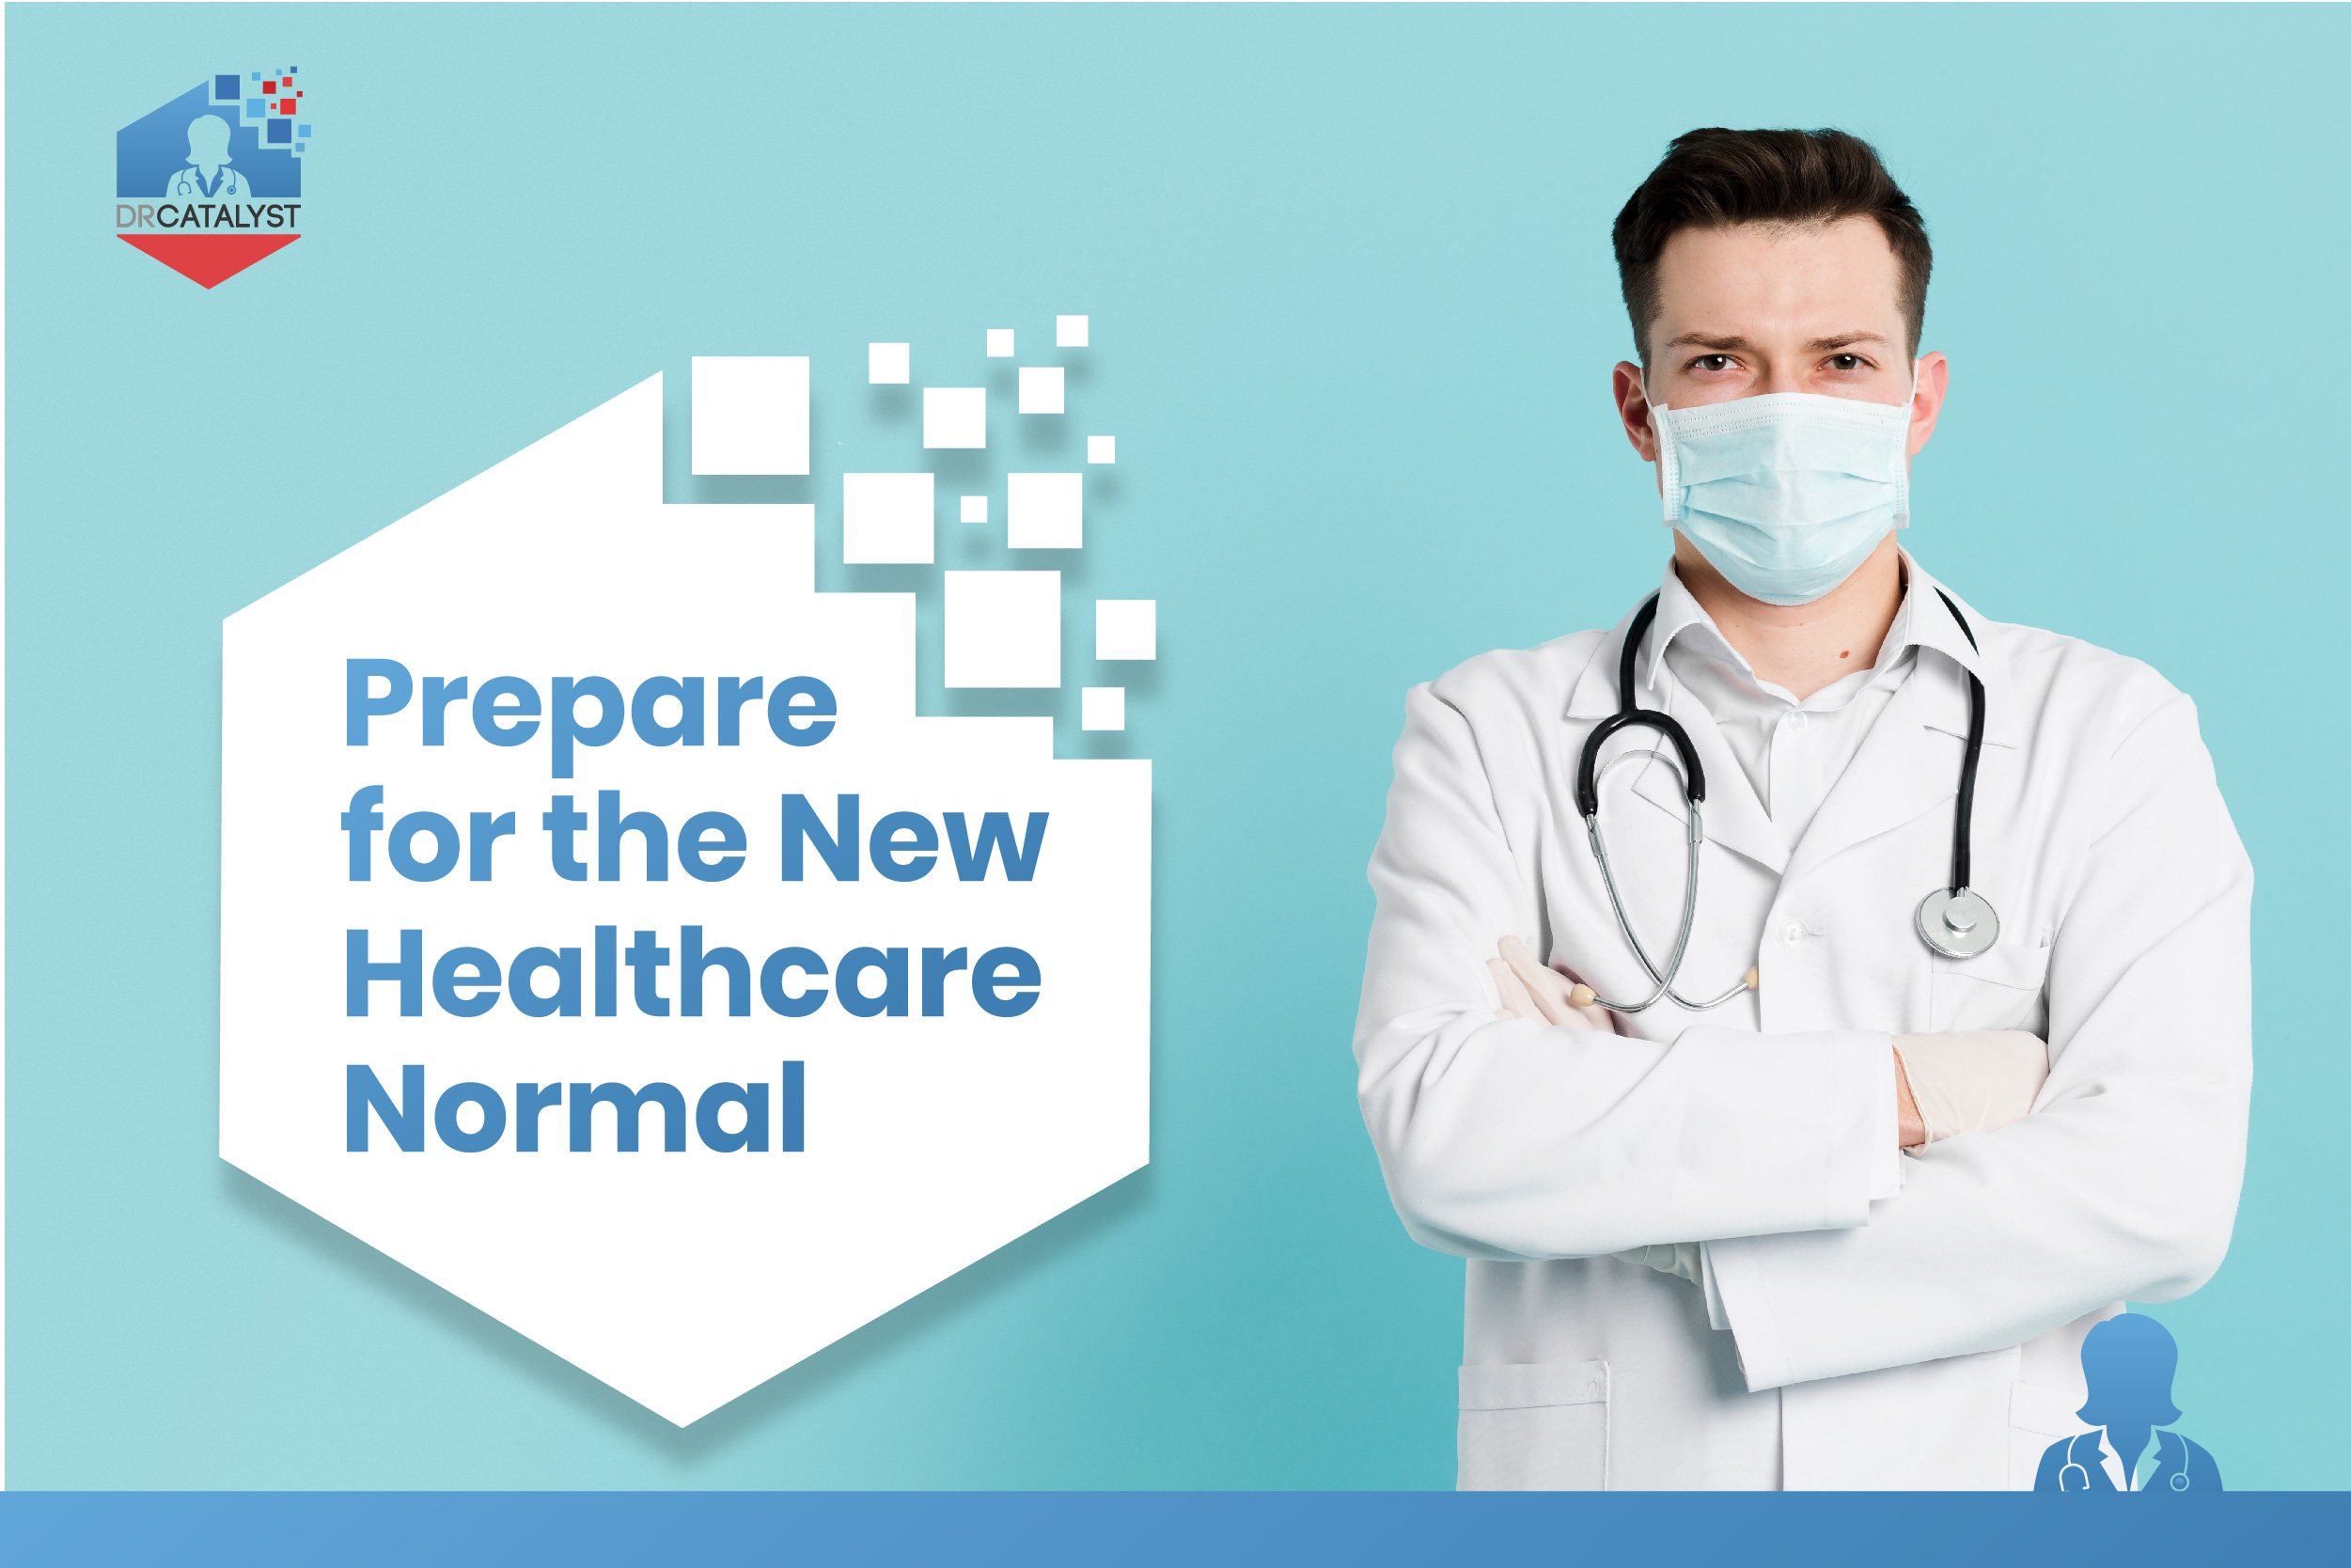 Prepare for the New Healthcare Normal